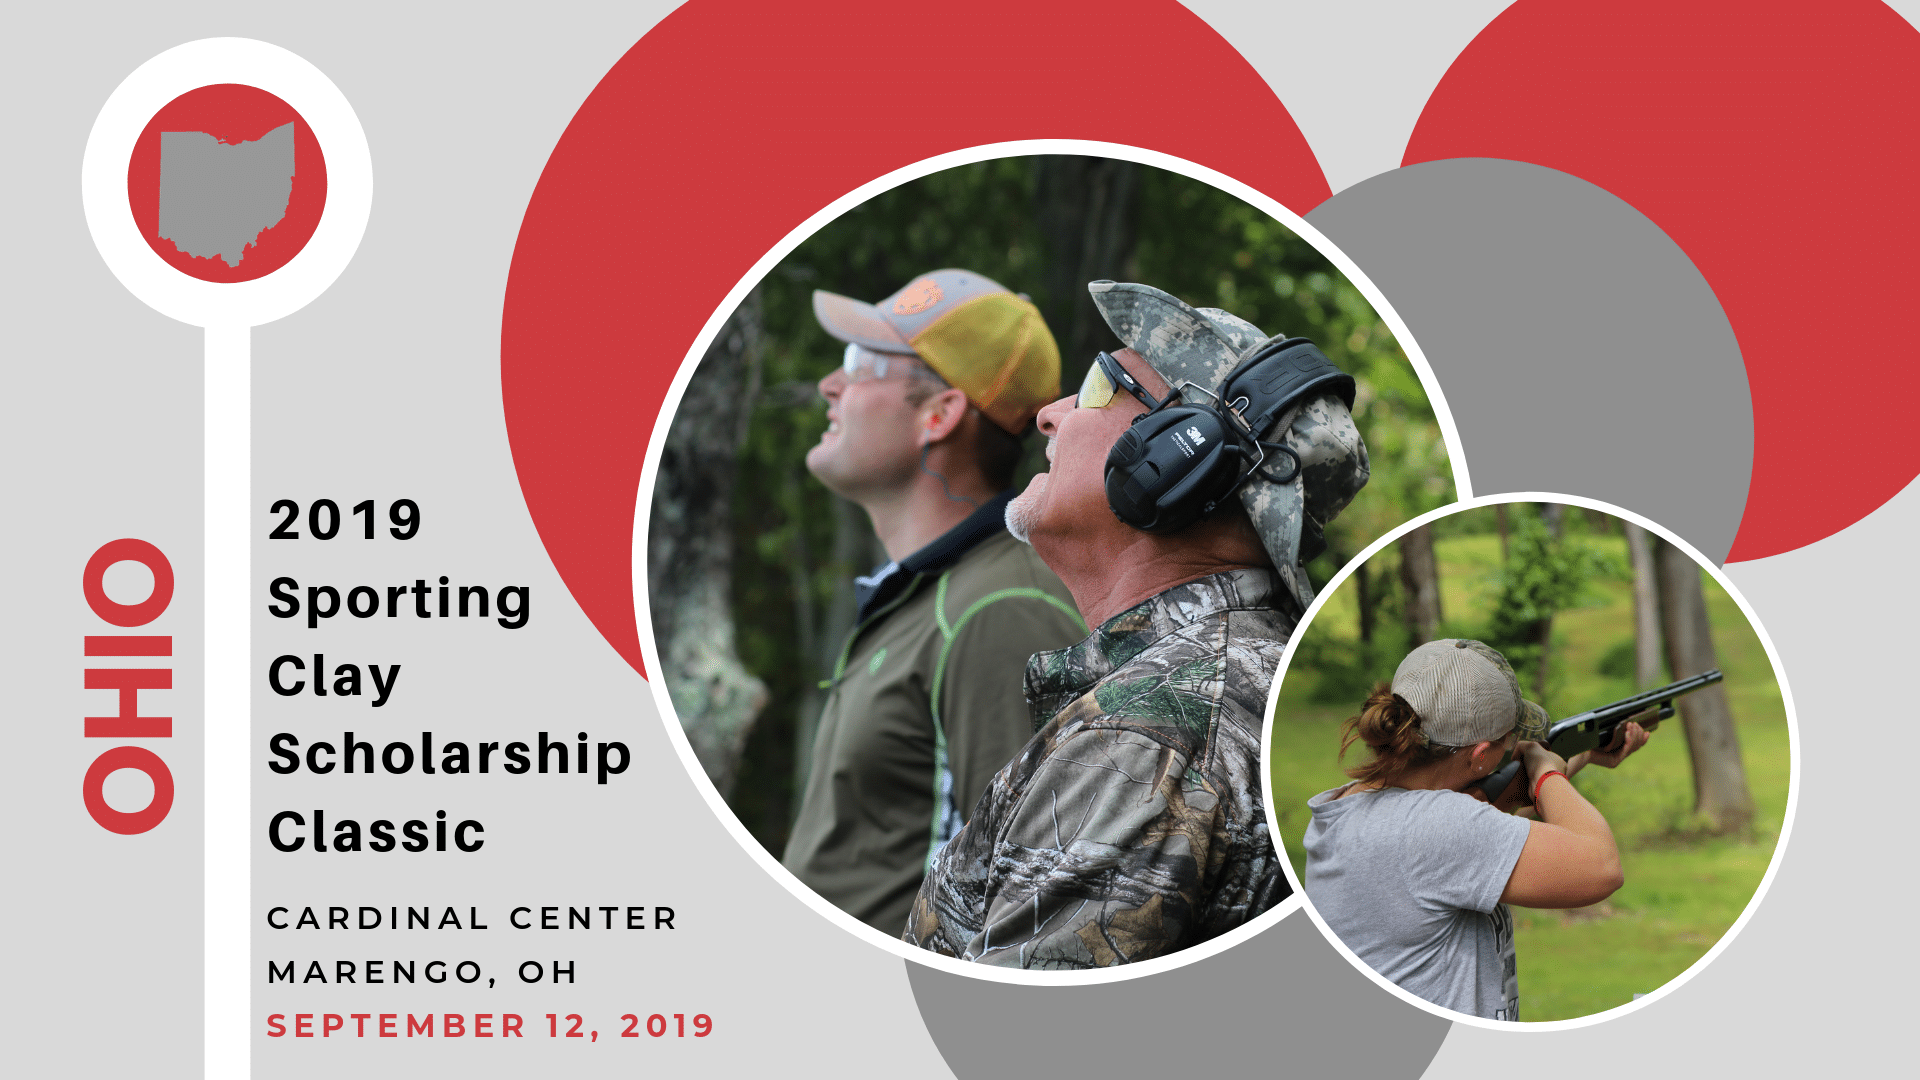 2019 Ohio Sporting Clay Scholarship Classic